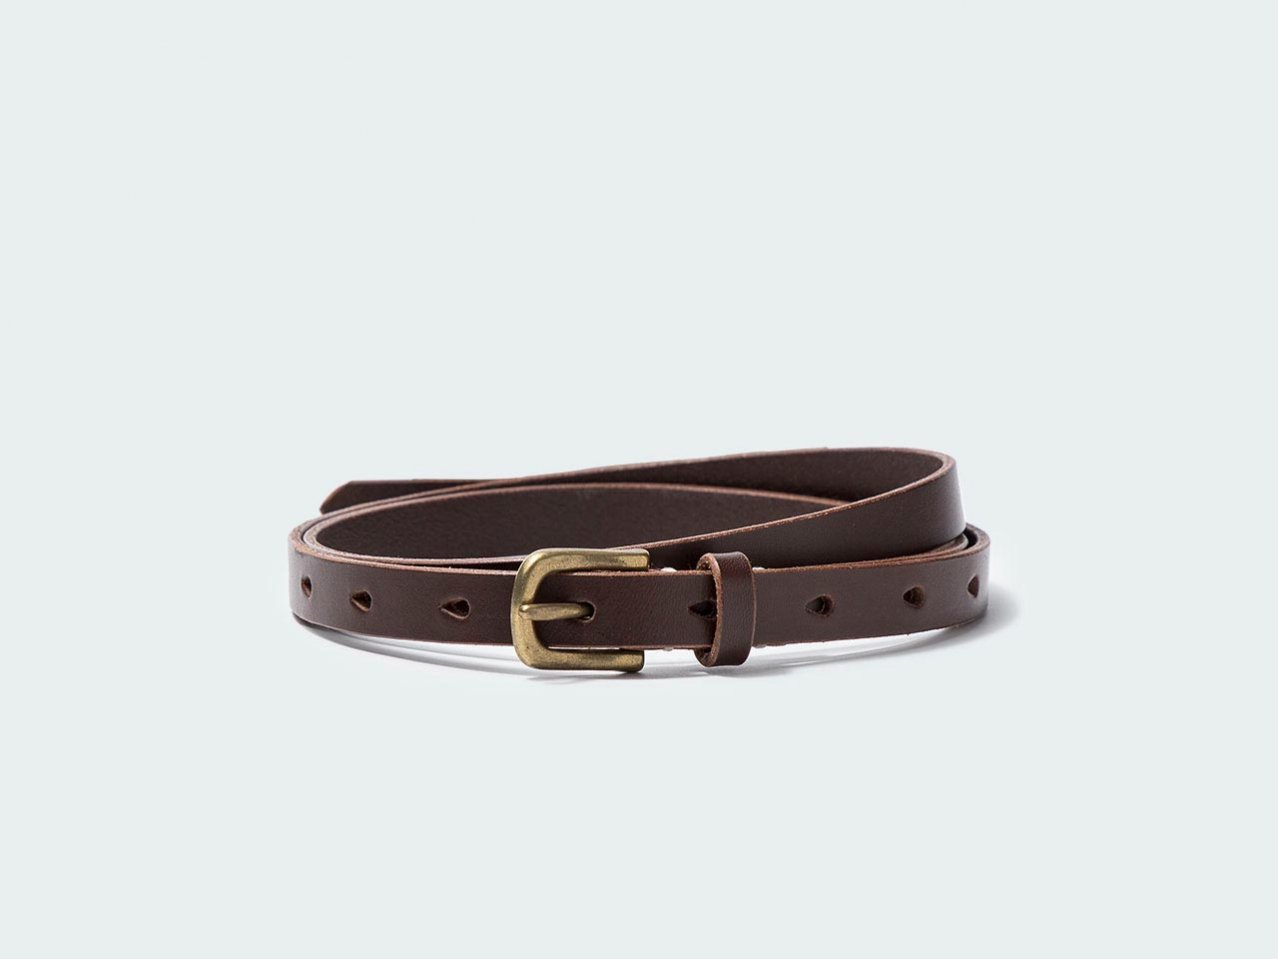 NARROW STANDARD 15 / DARK BROWN